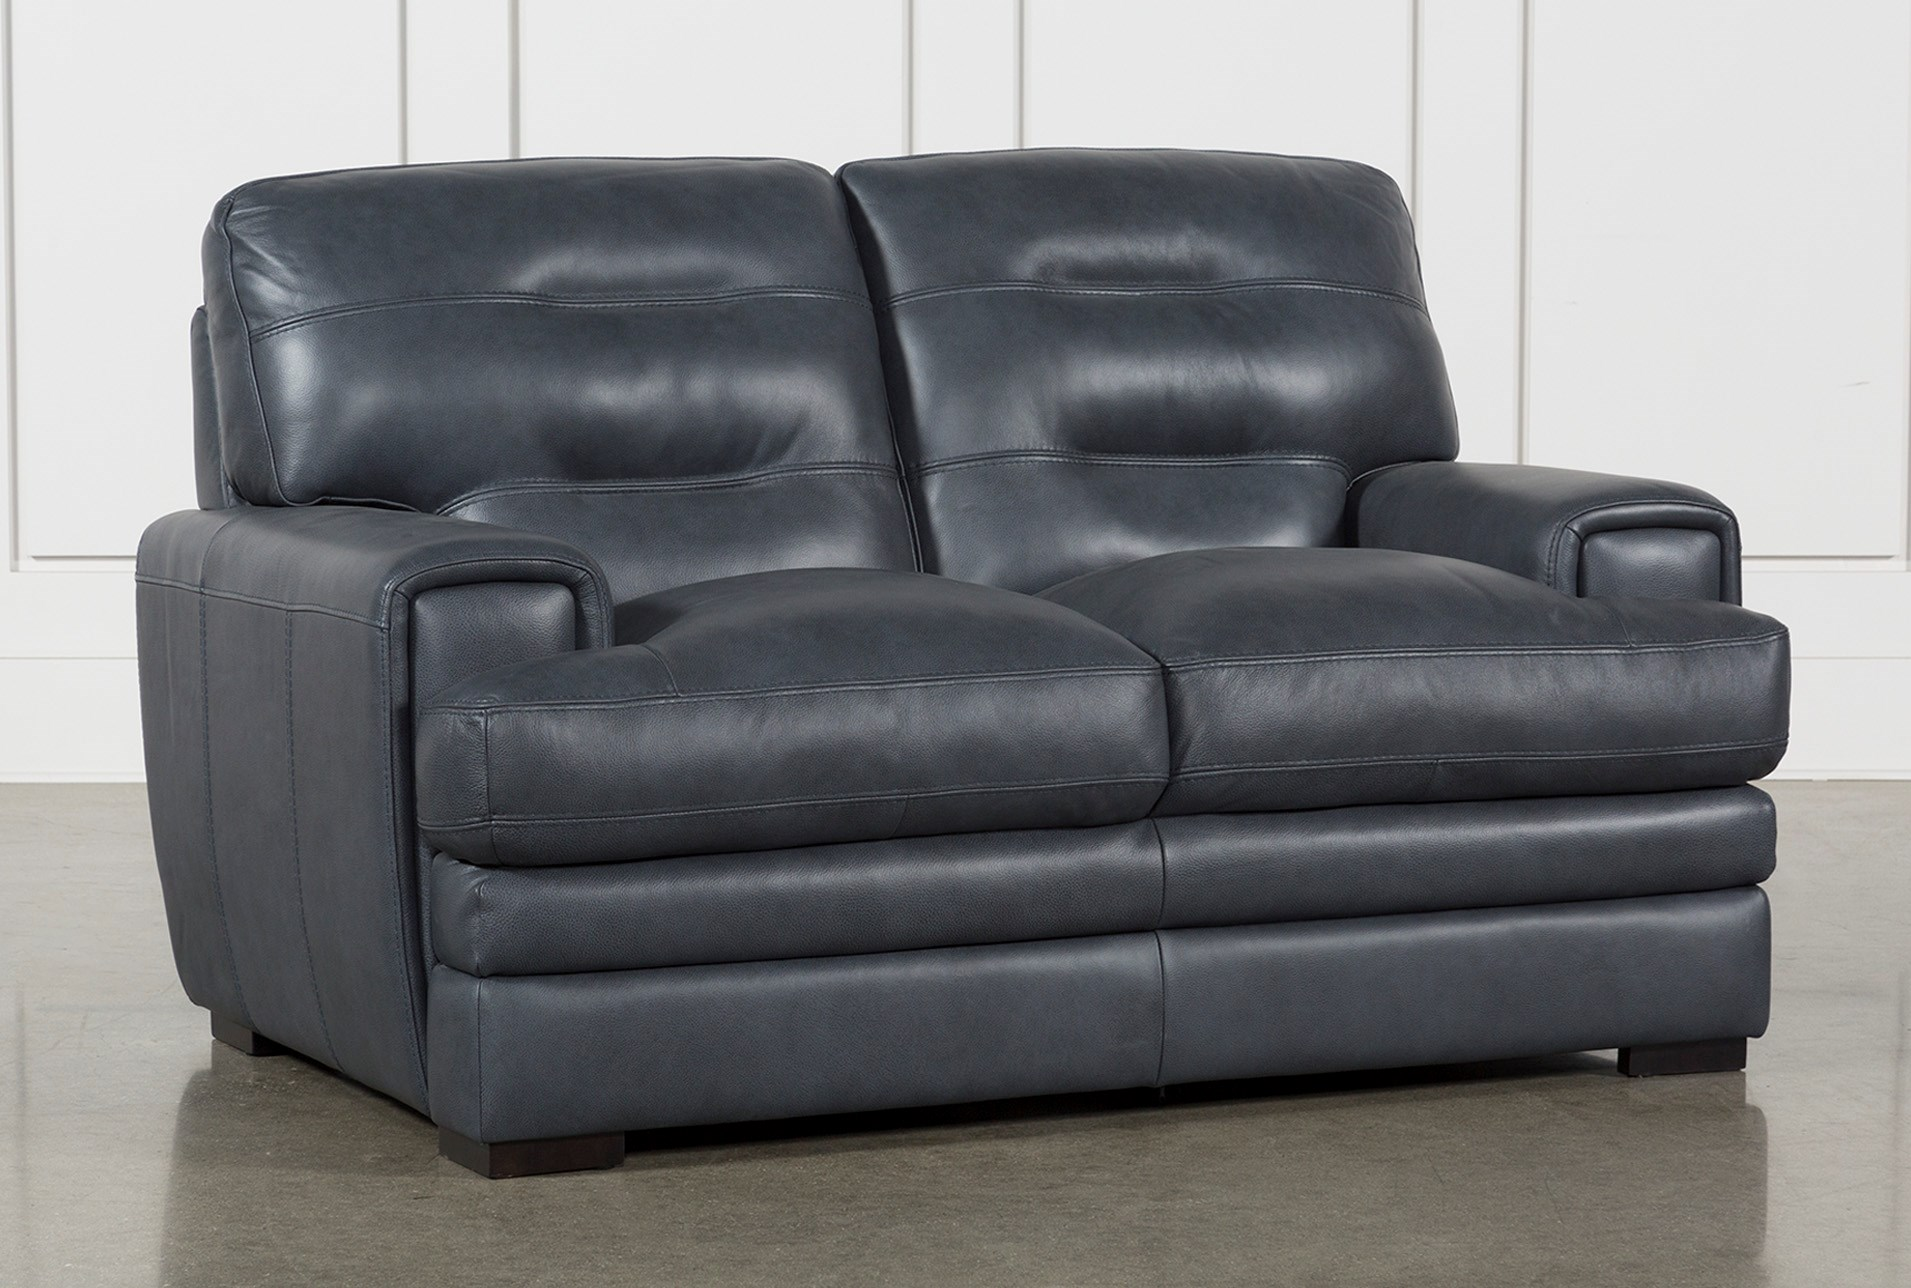 Gina blue leather loveseat qty 1 has been successfully added to your cart